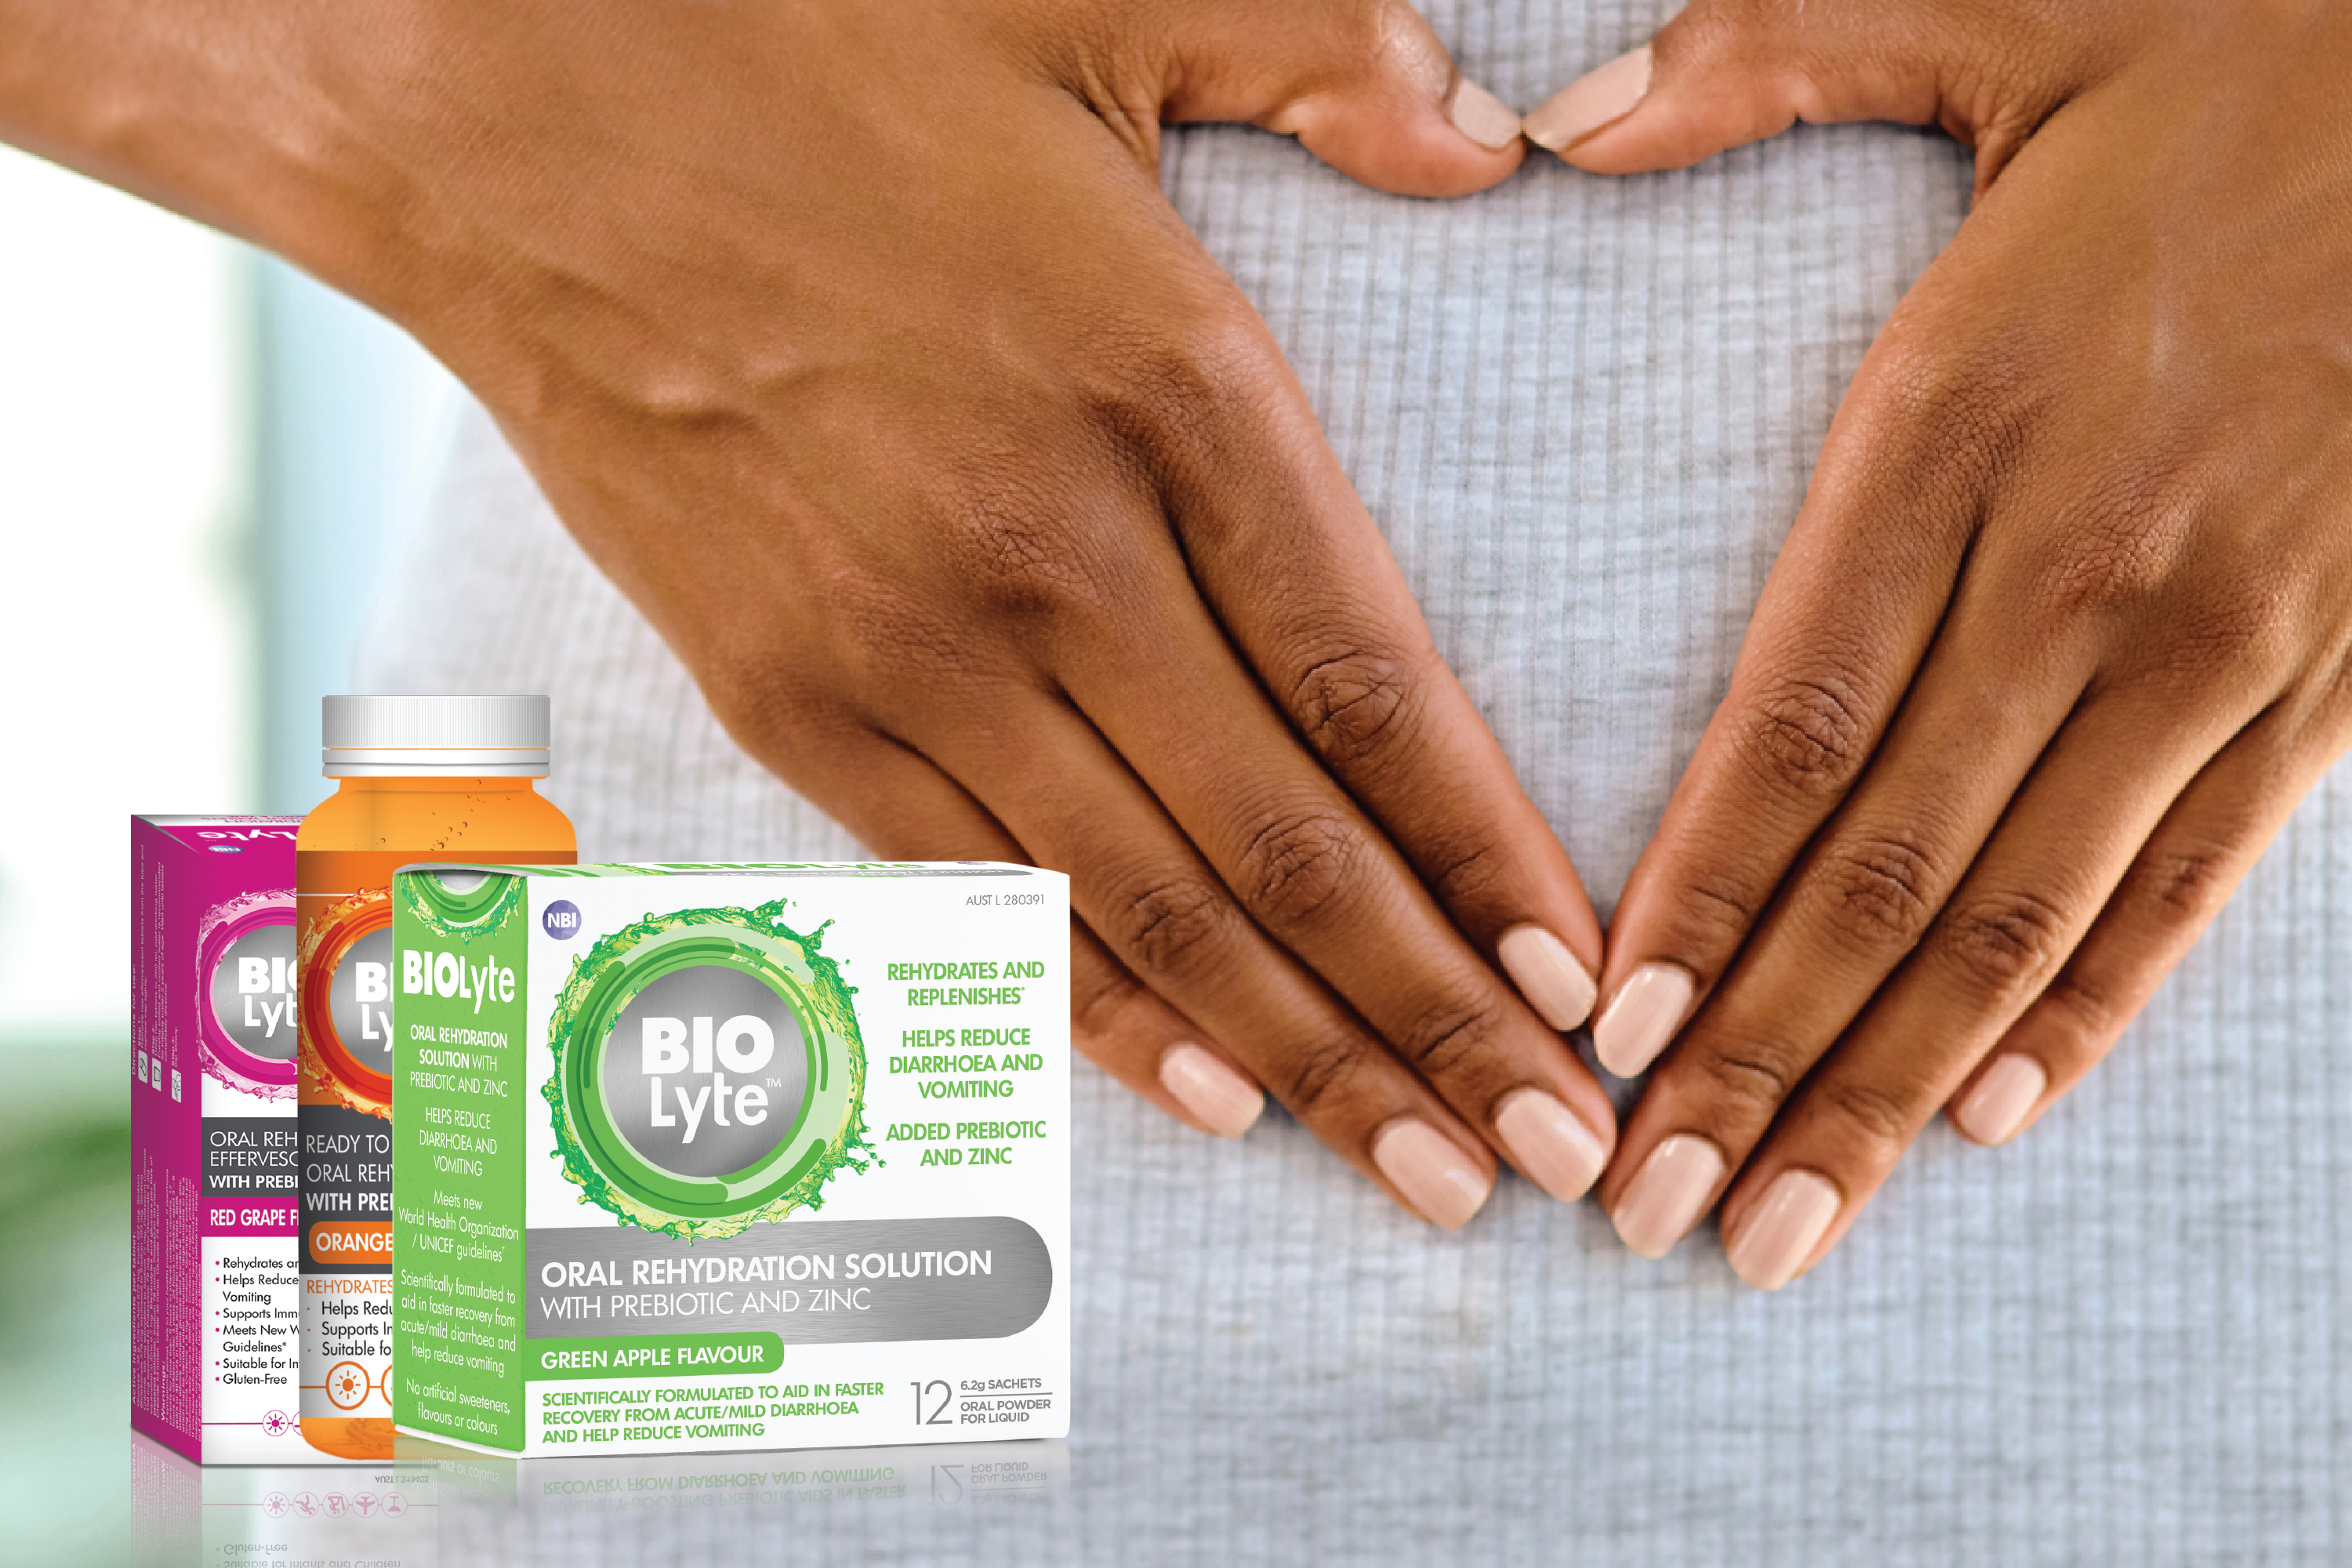 THE BENEFITS OF PREBIOTIC AND ZINC FOR GUT HEALTH